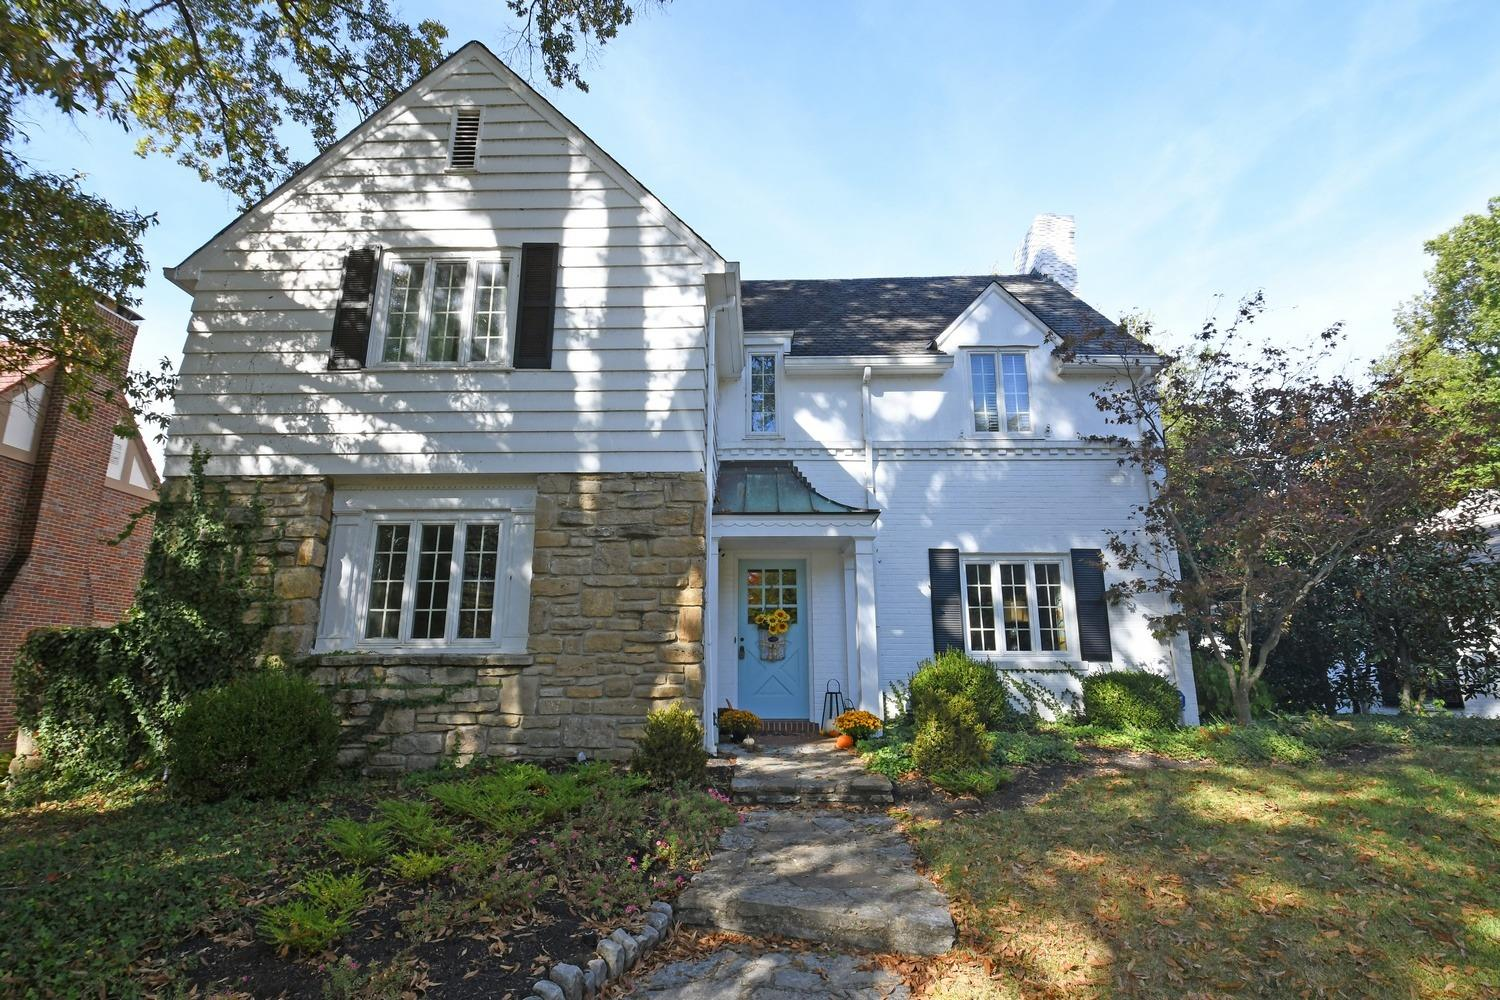 Property for sale at 6820 Hammerstone Way, Mariemont,  Ohio 45227